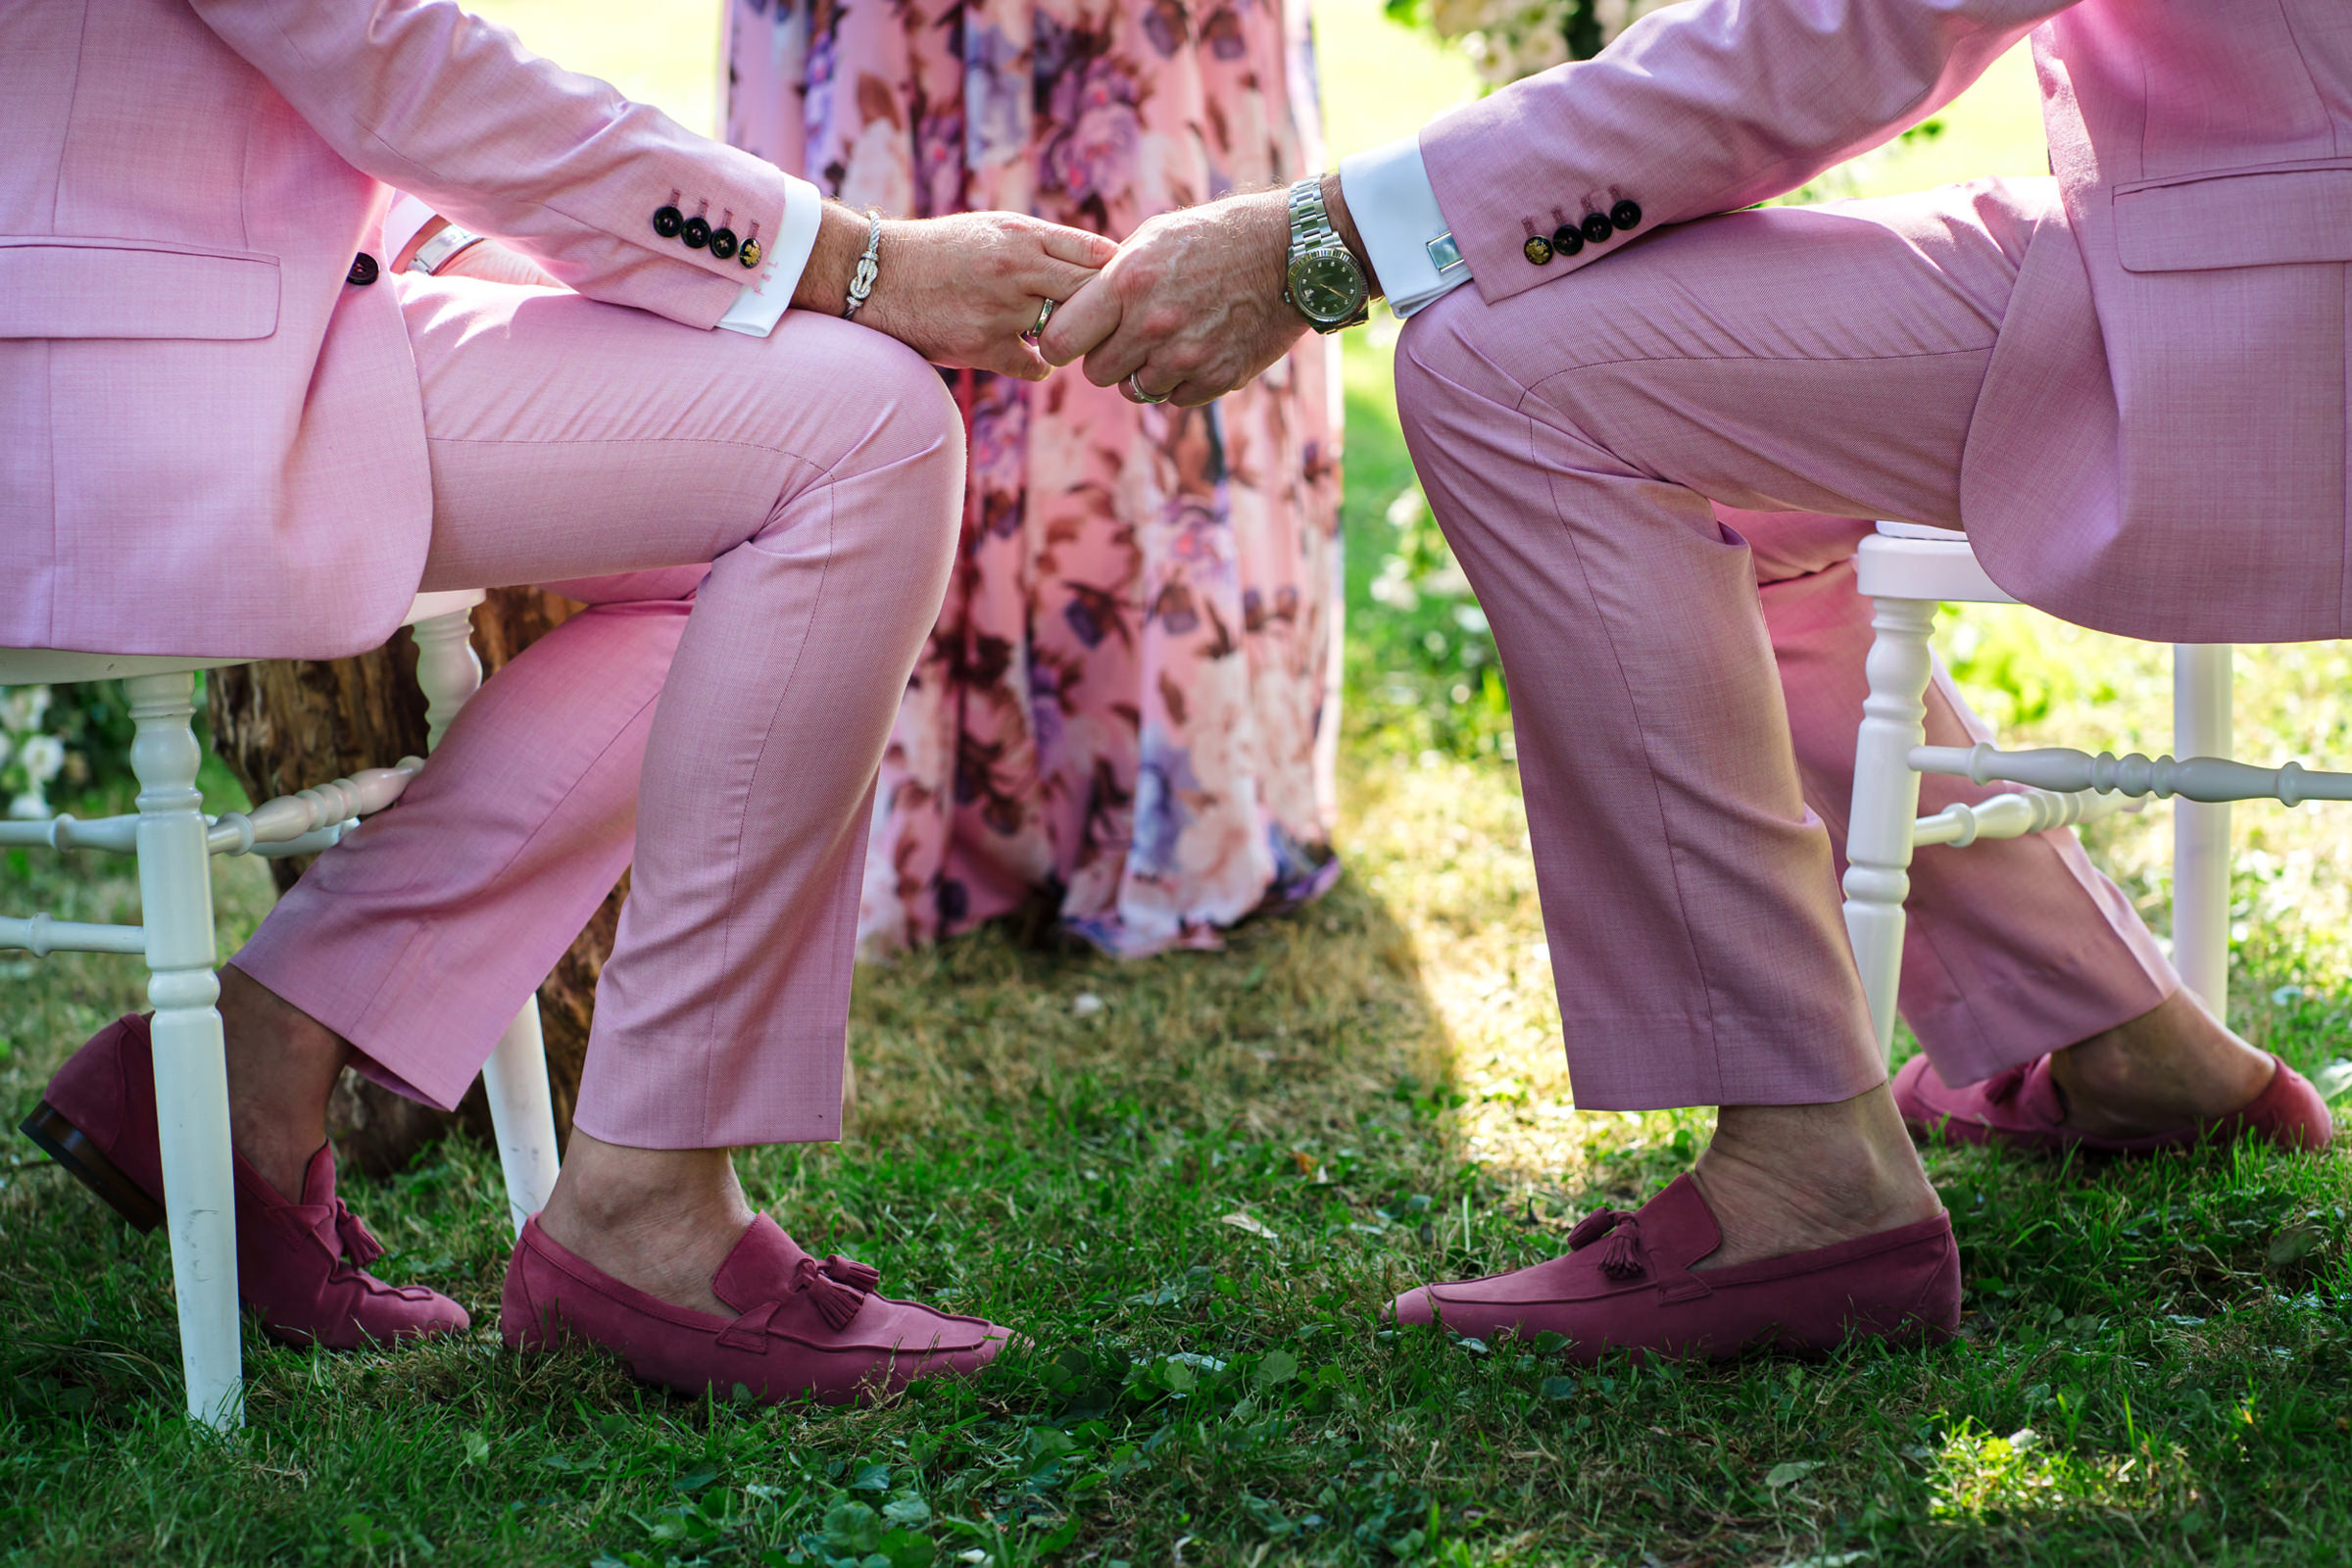 Grooms in pink suits hold hands at wedding ceremony, photo by Philippe Swiggers